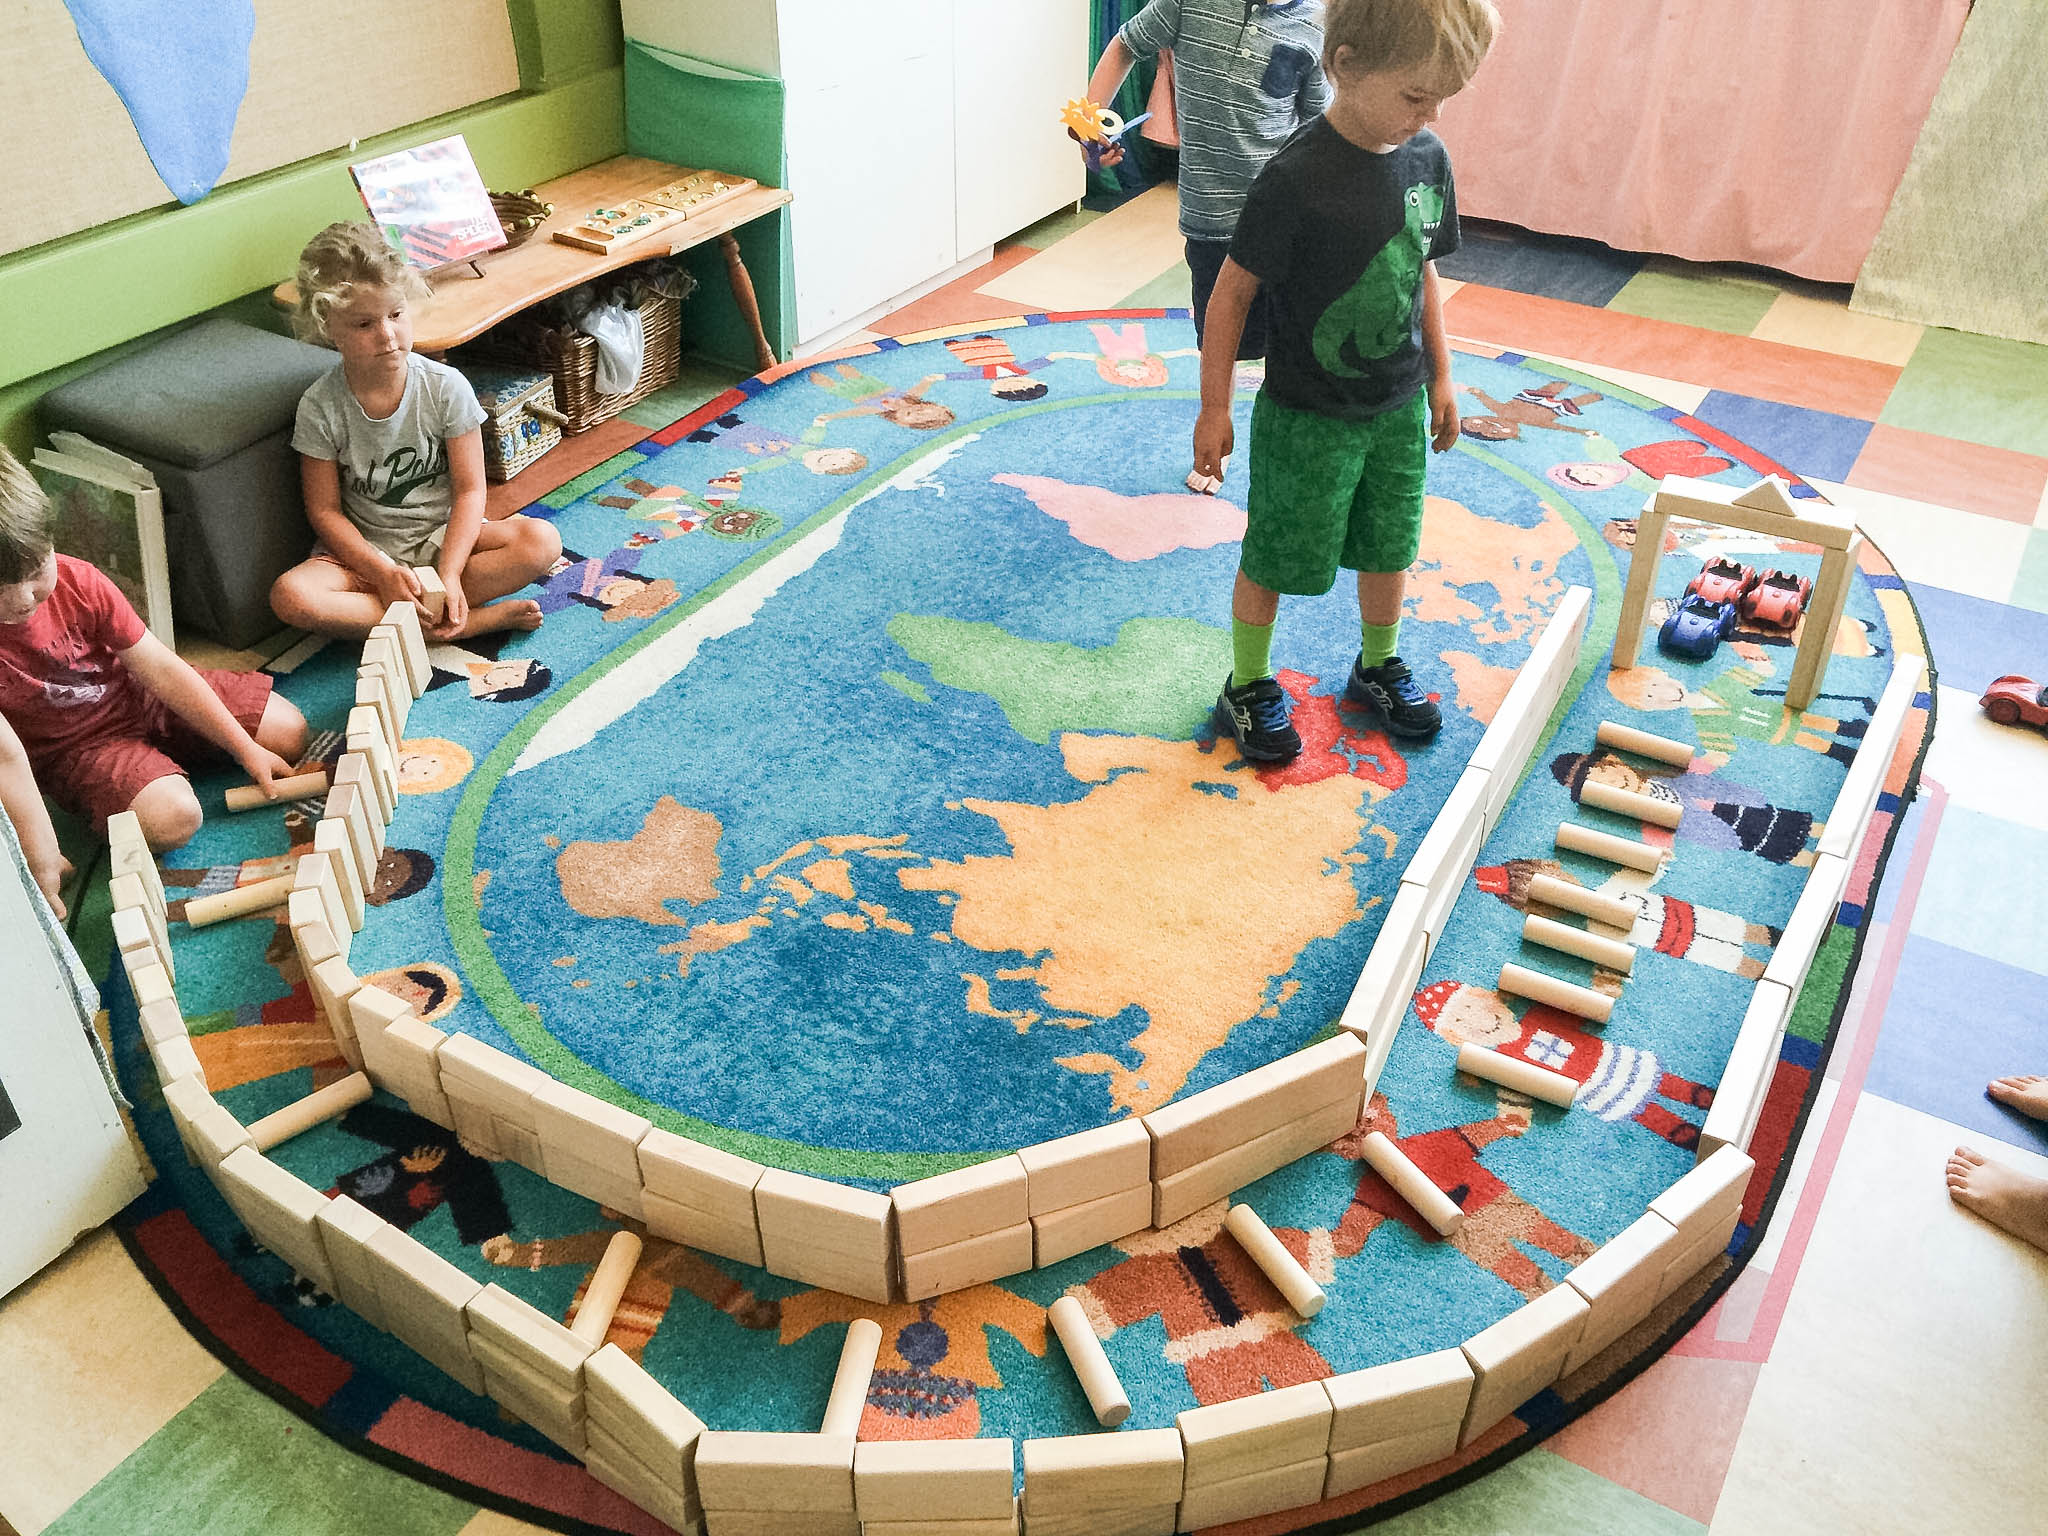 kids building with blocks on a rug